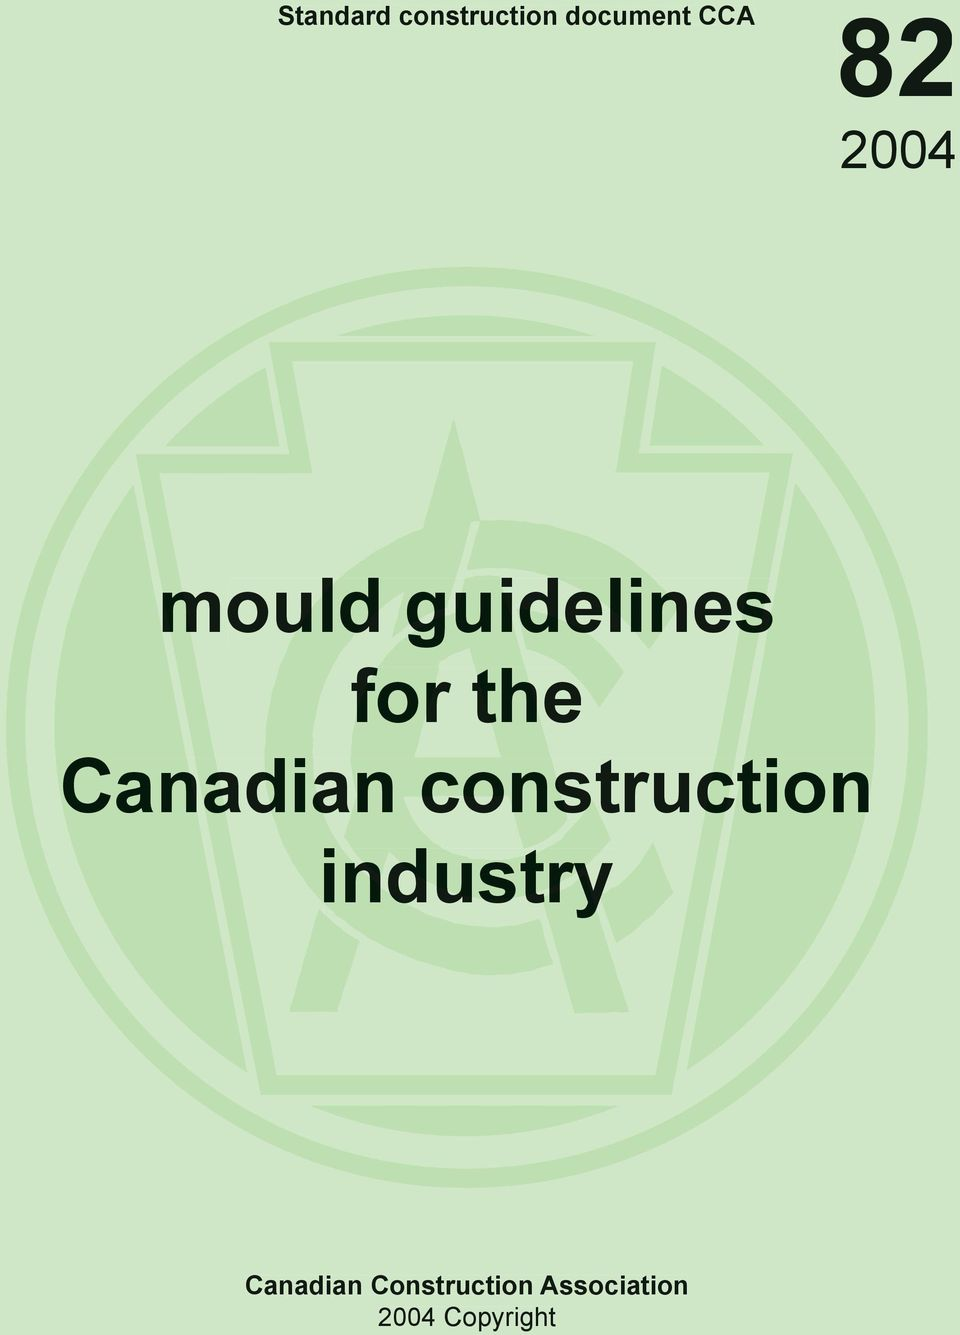 Canadian construction industry